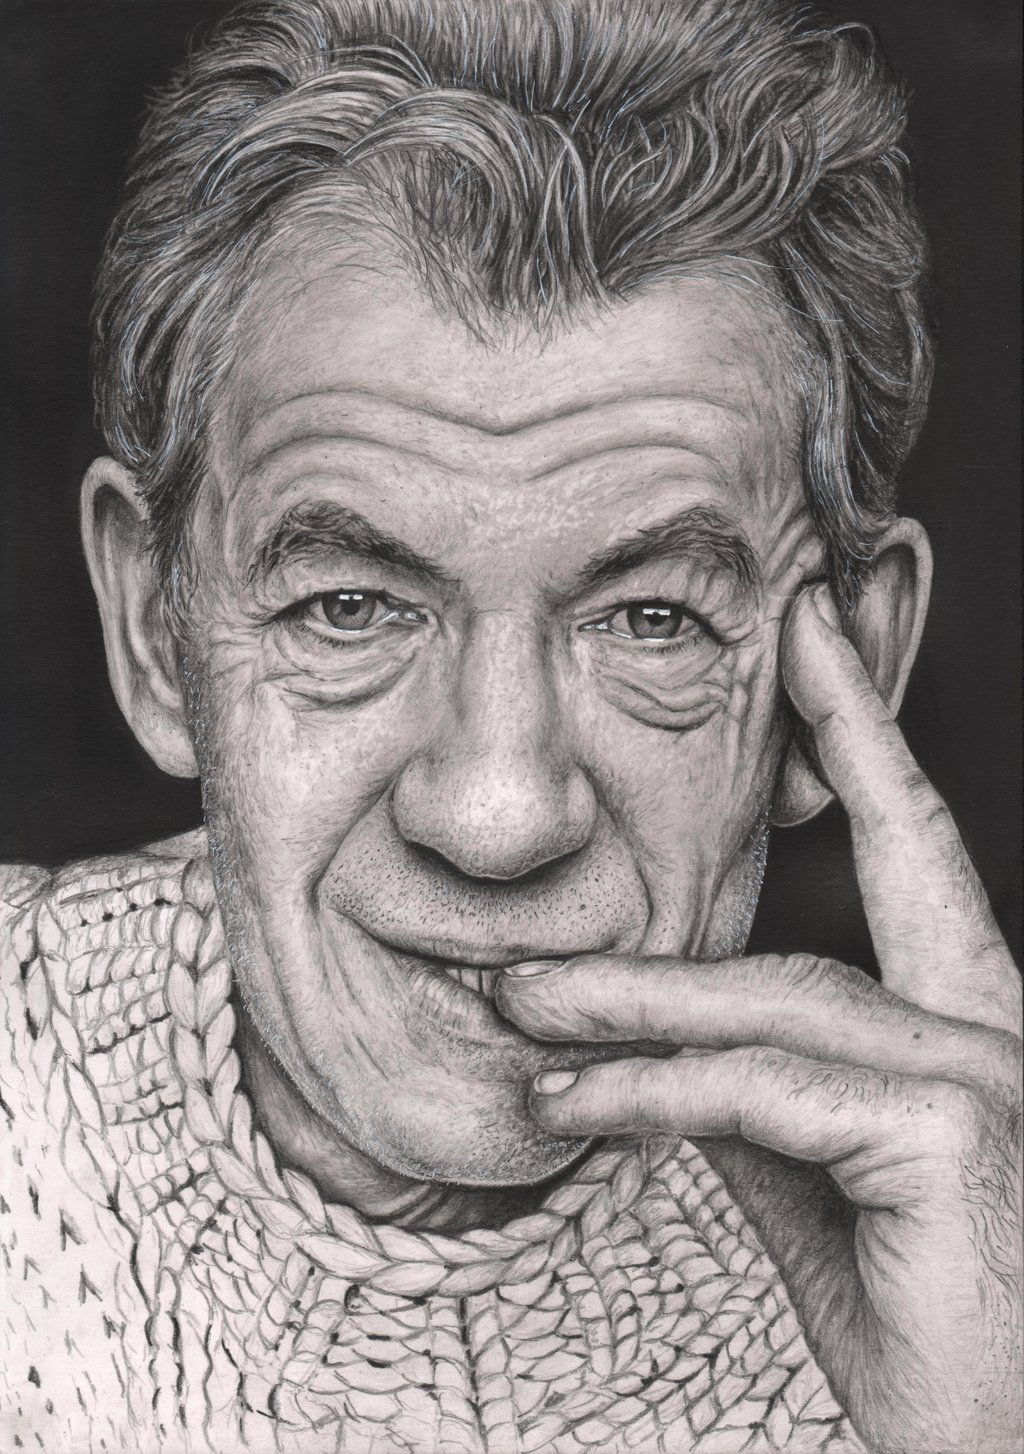 Famous Pencil Drawing Artists : famous, pencil, drawing, artists, Drawings